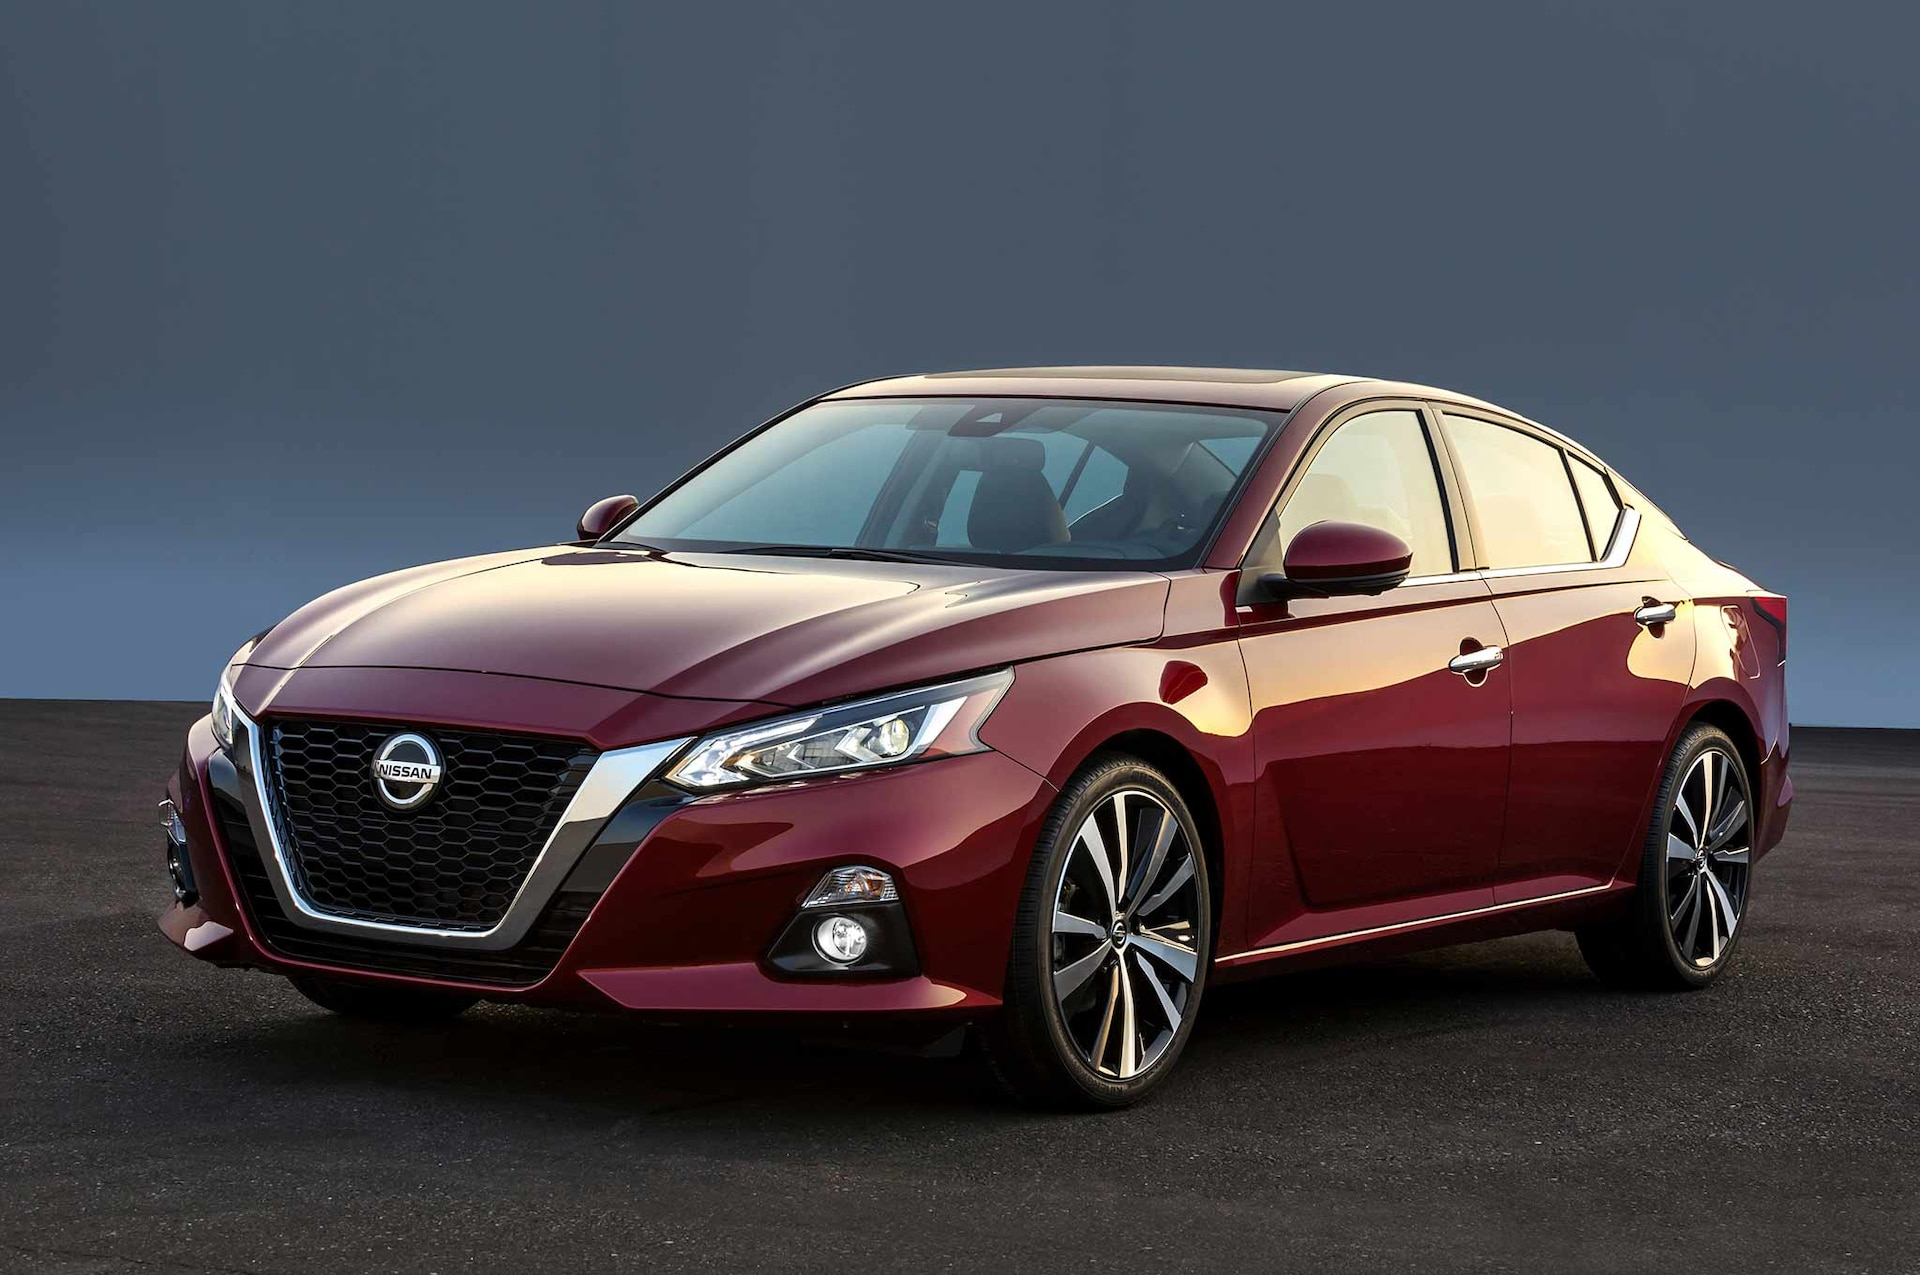 2019 nissan altima priced from 24 645